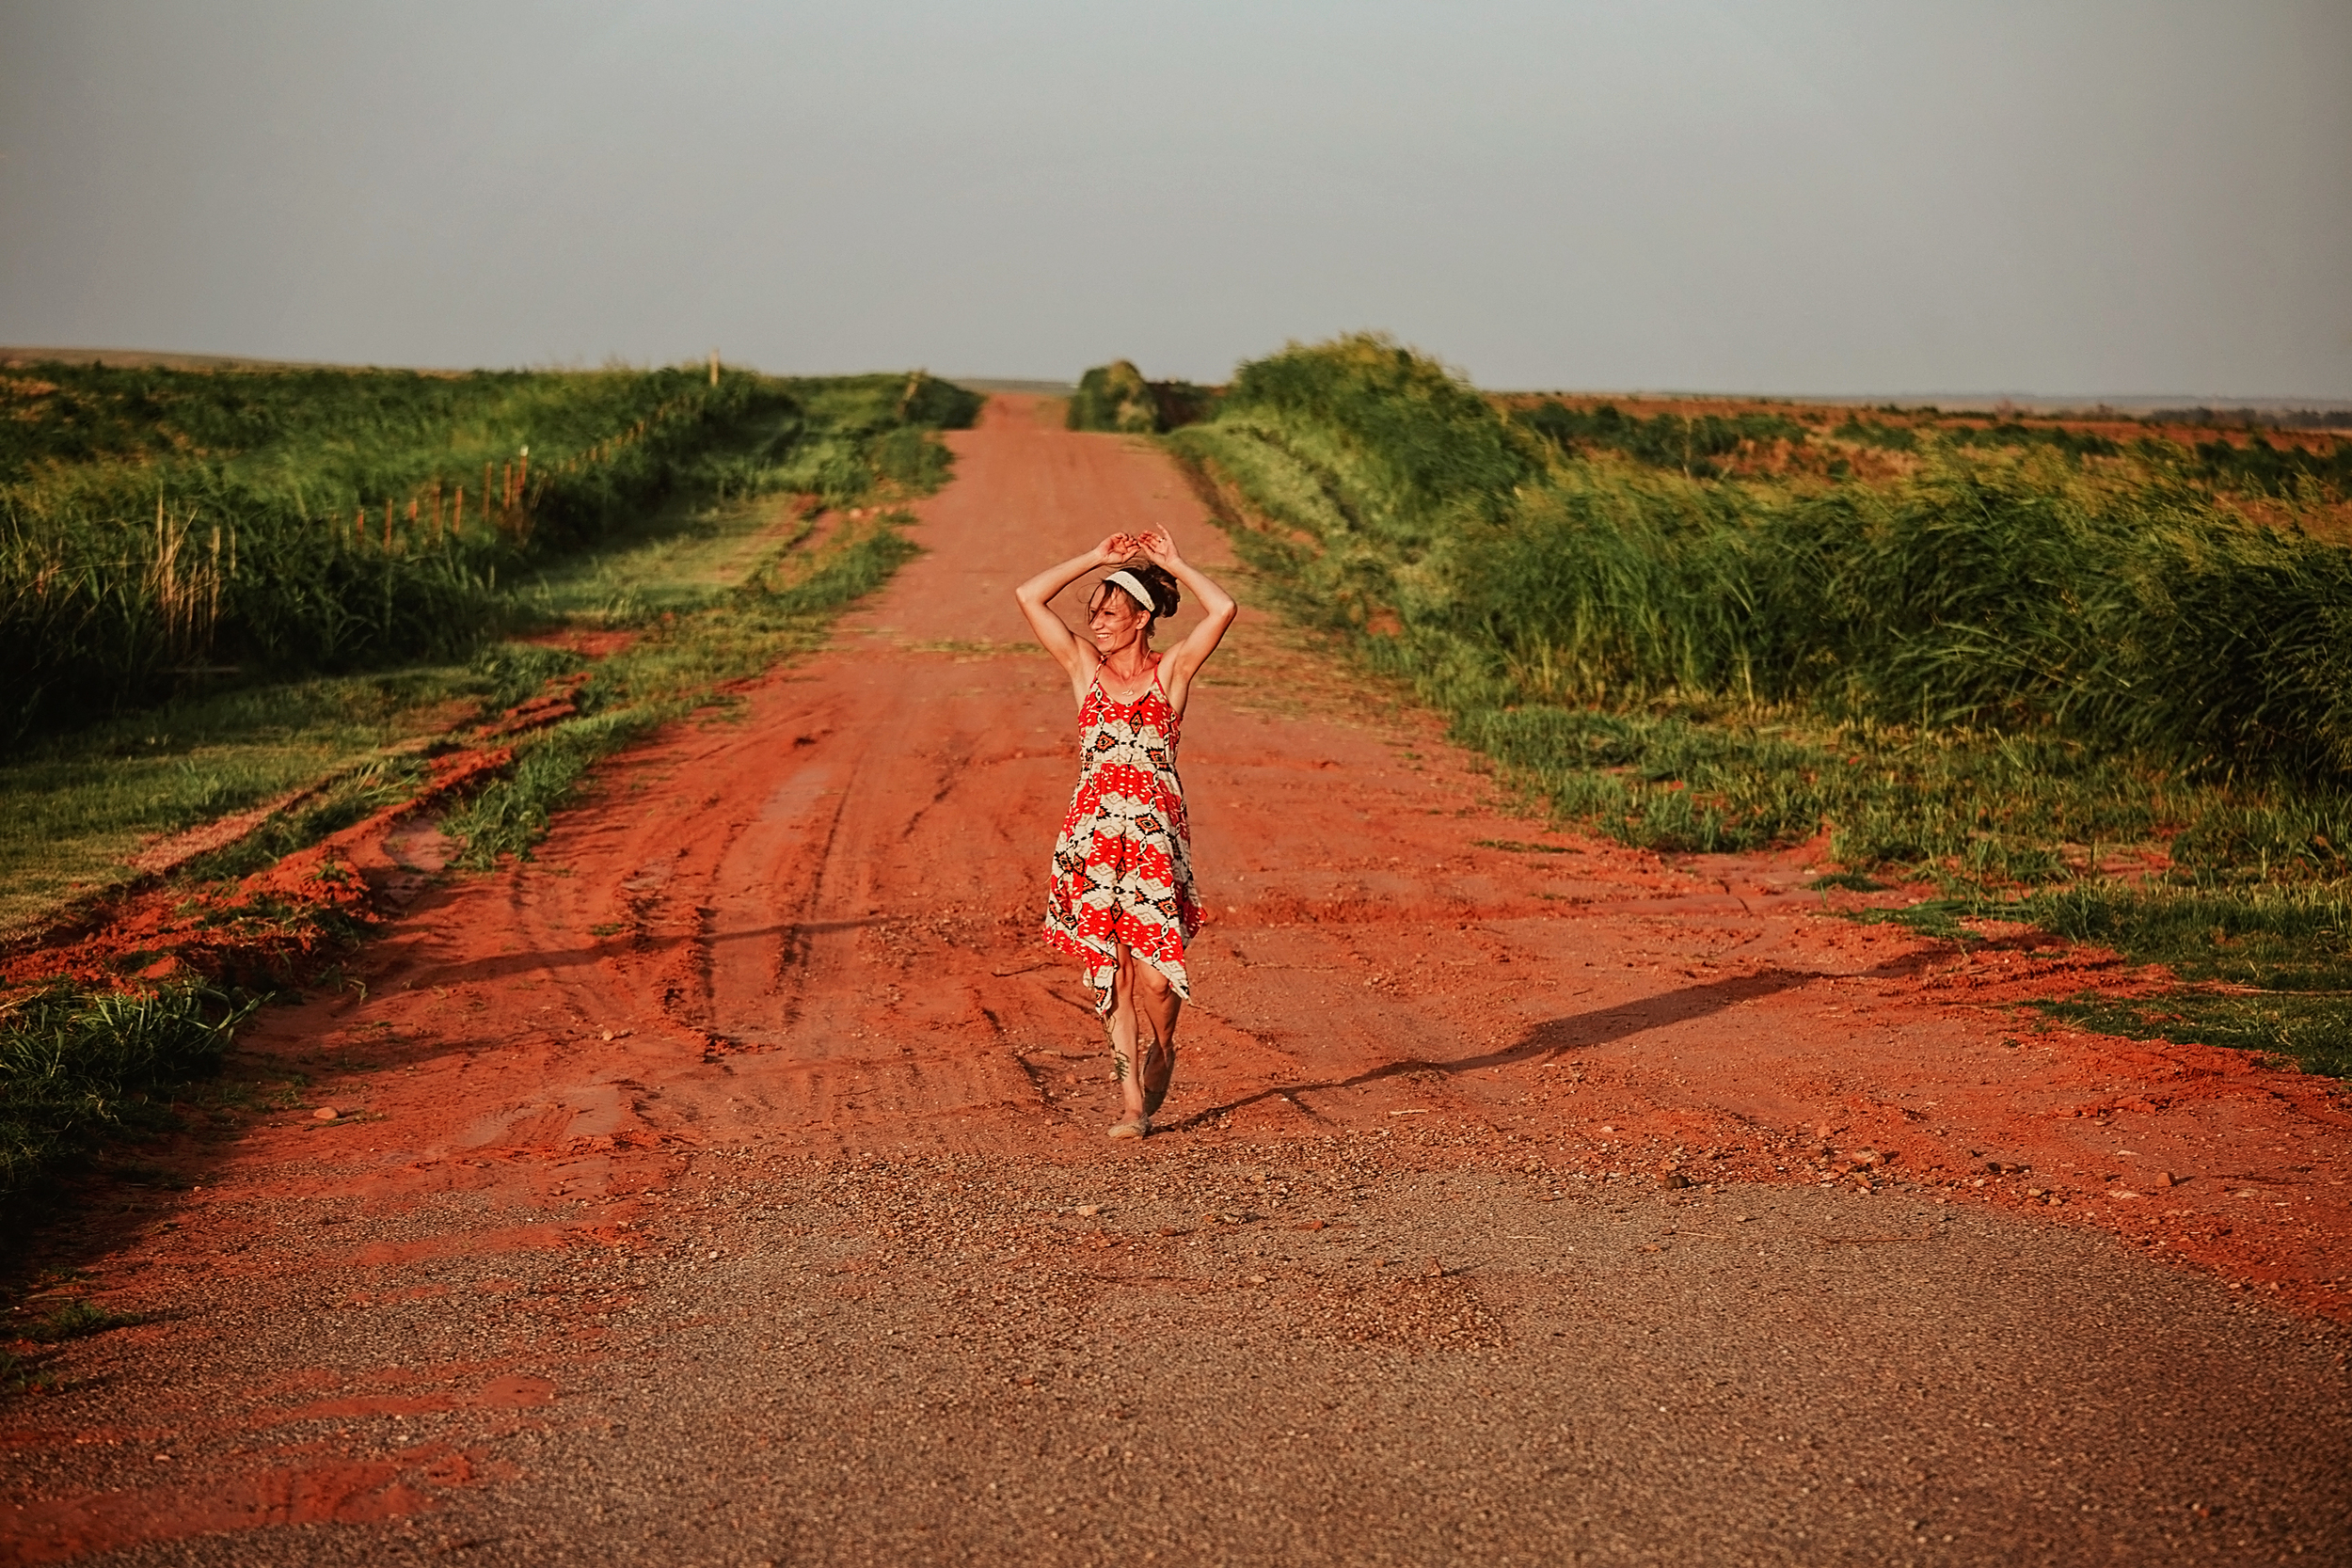 Twirling freely on an old familiar dirt road visiting family in Western Oklahoma.